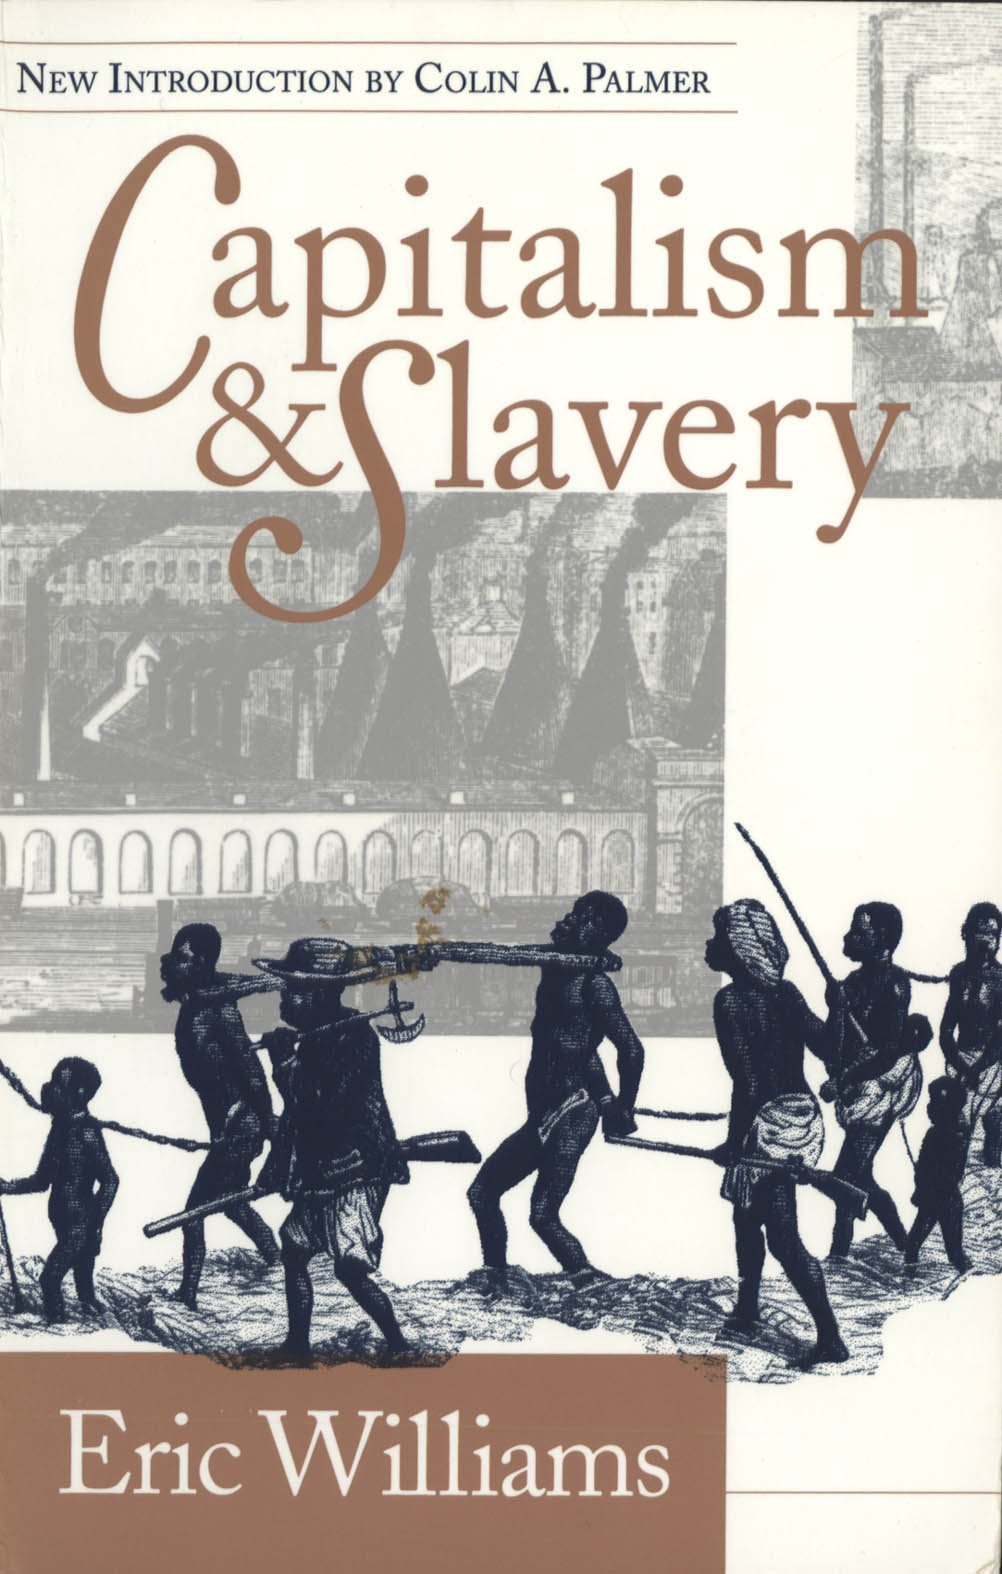 eric williams thesis capitalism slavery Modern scholarship on the relationship between british capitalism and caribbean slavery has been profoundly influenced by eric williams's 1944 classic, capitalism and.